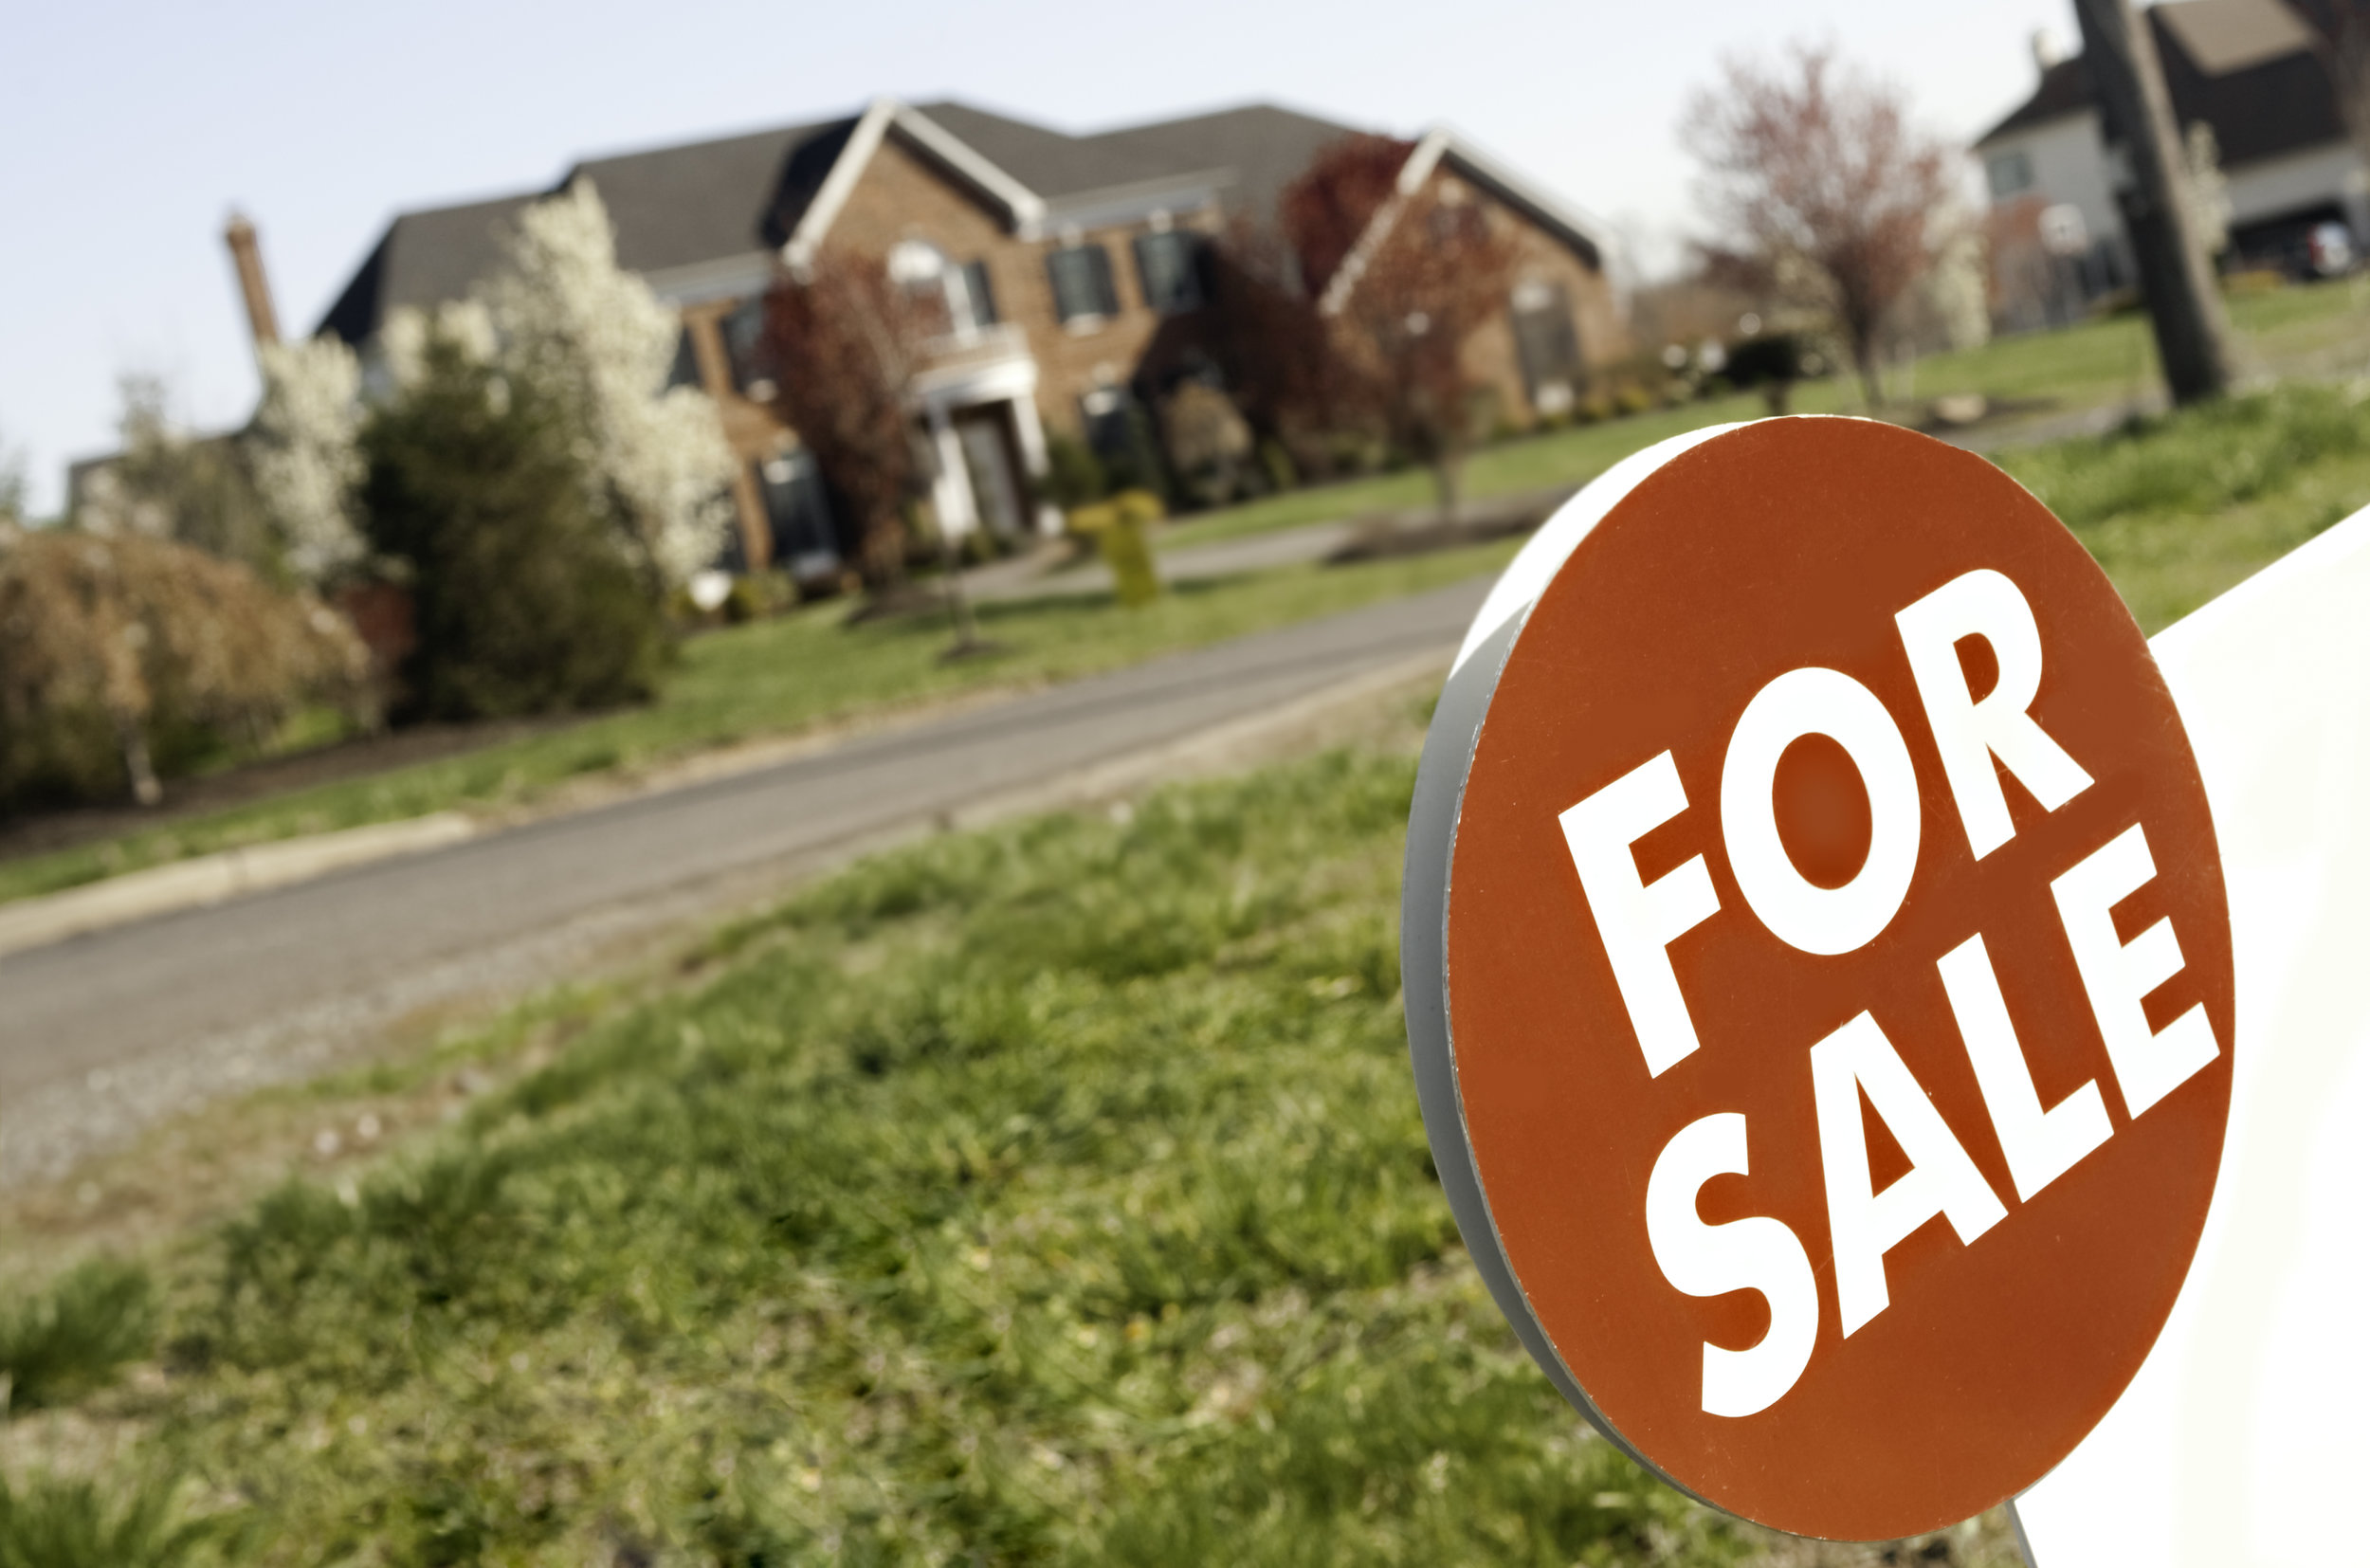 moving for sale sign.jpg